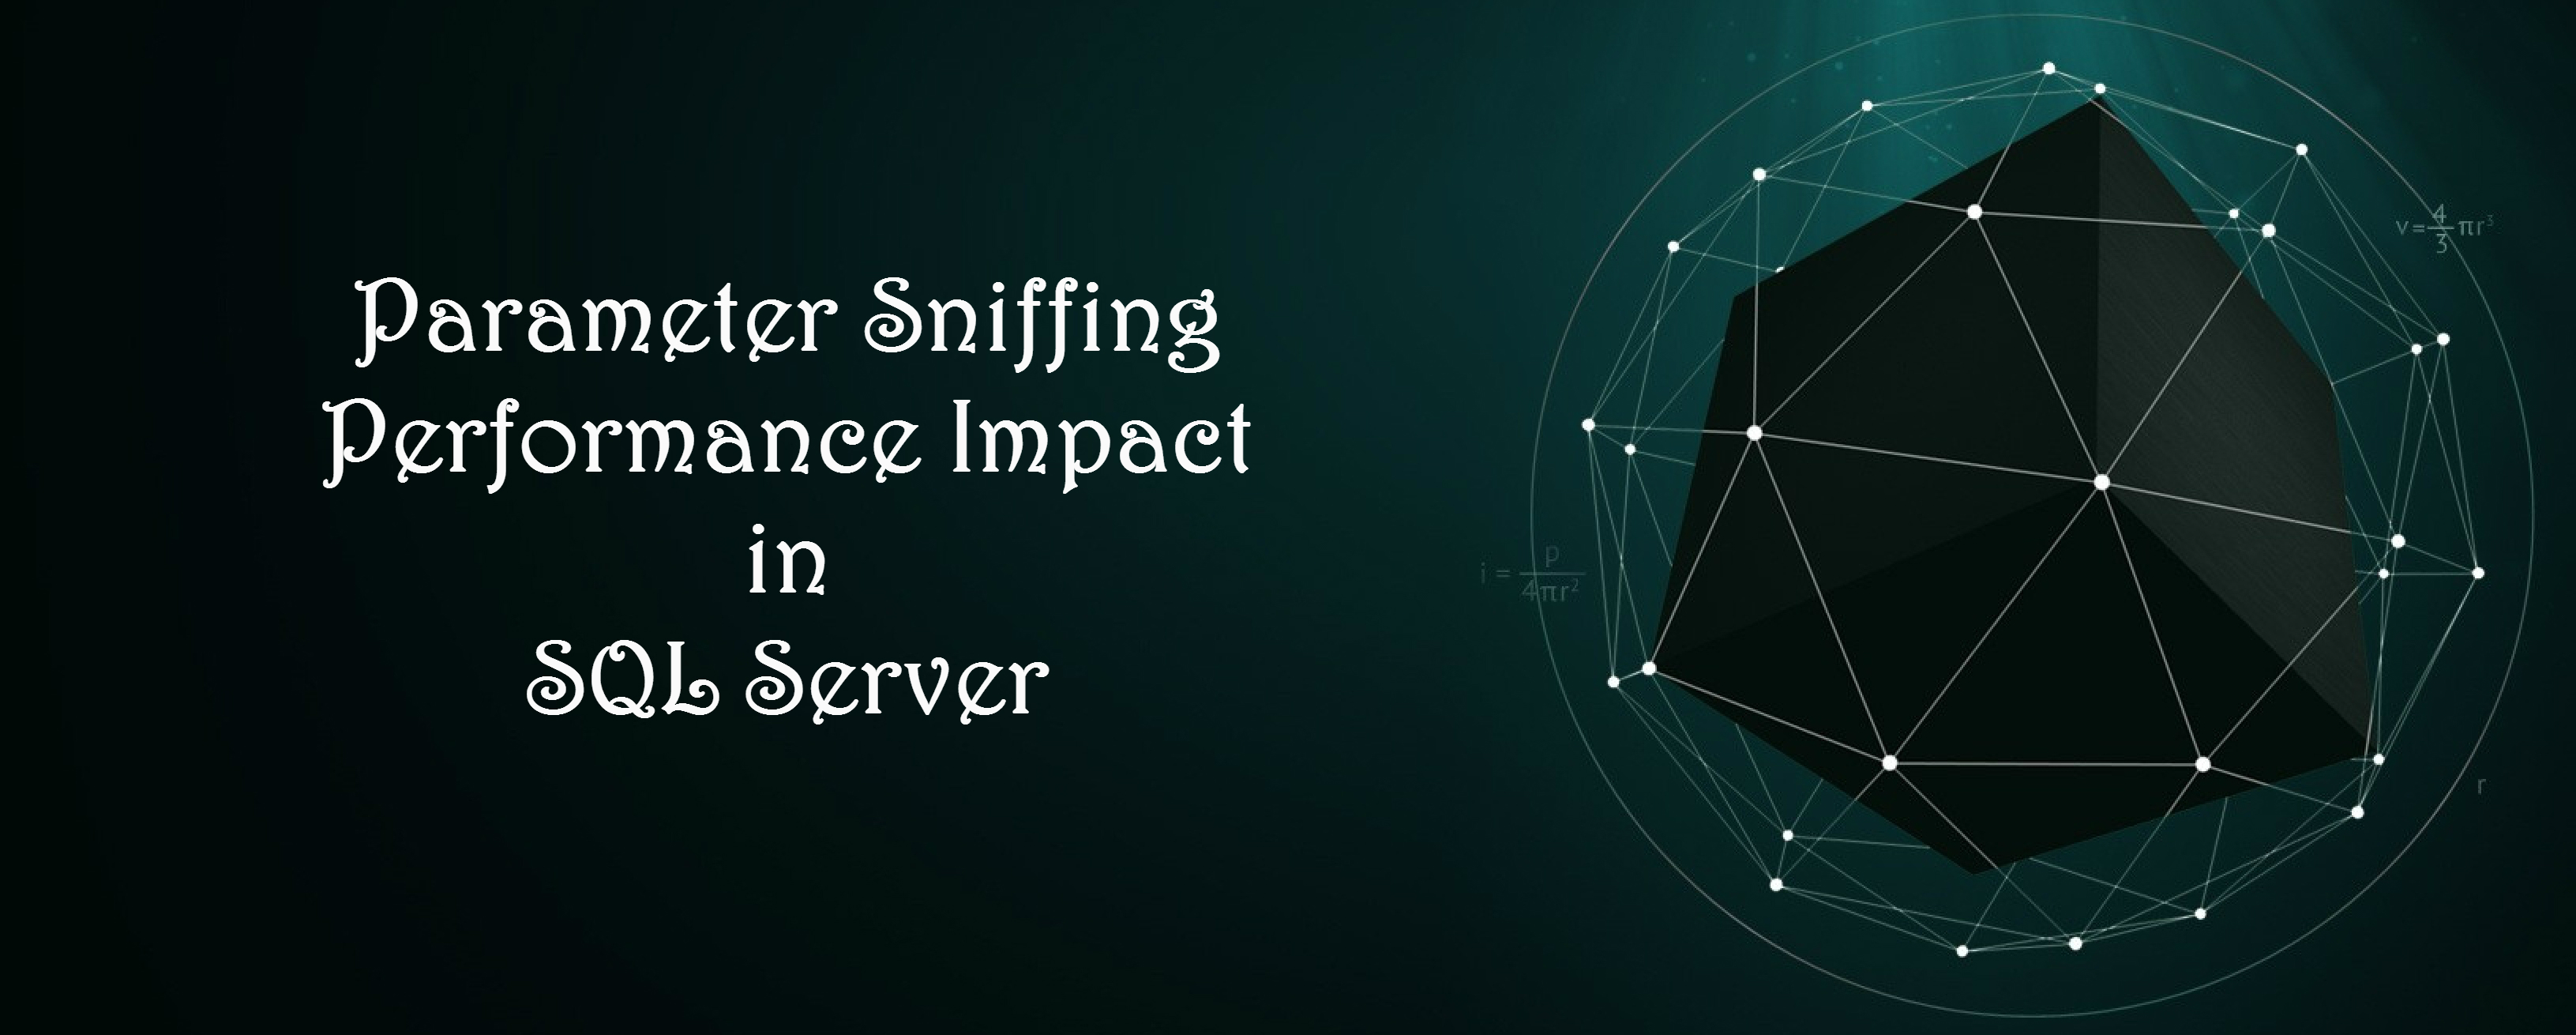 Parameter Sniffing Performance Impact in SQL Server